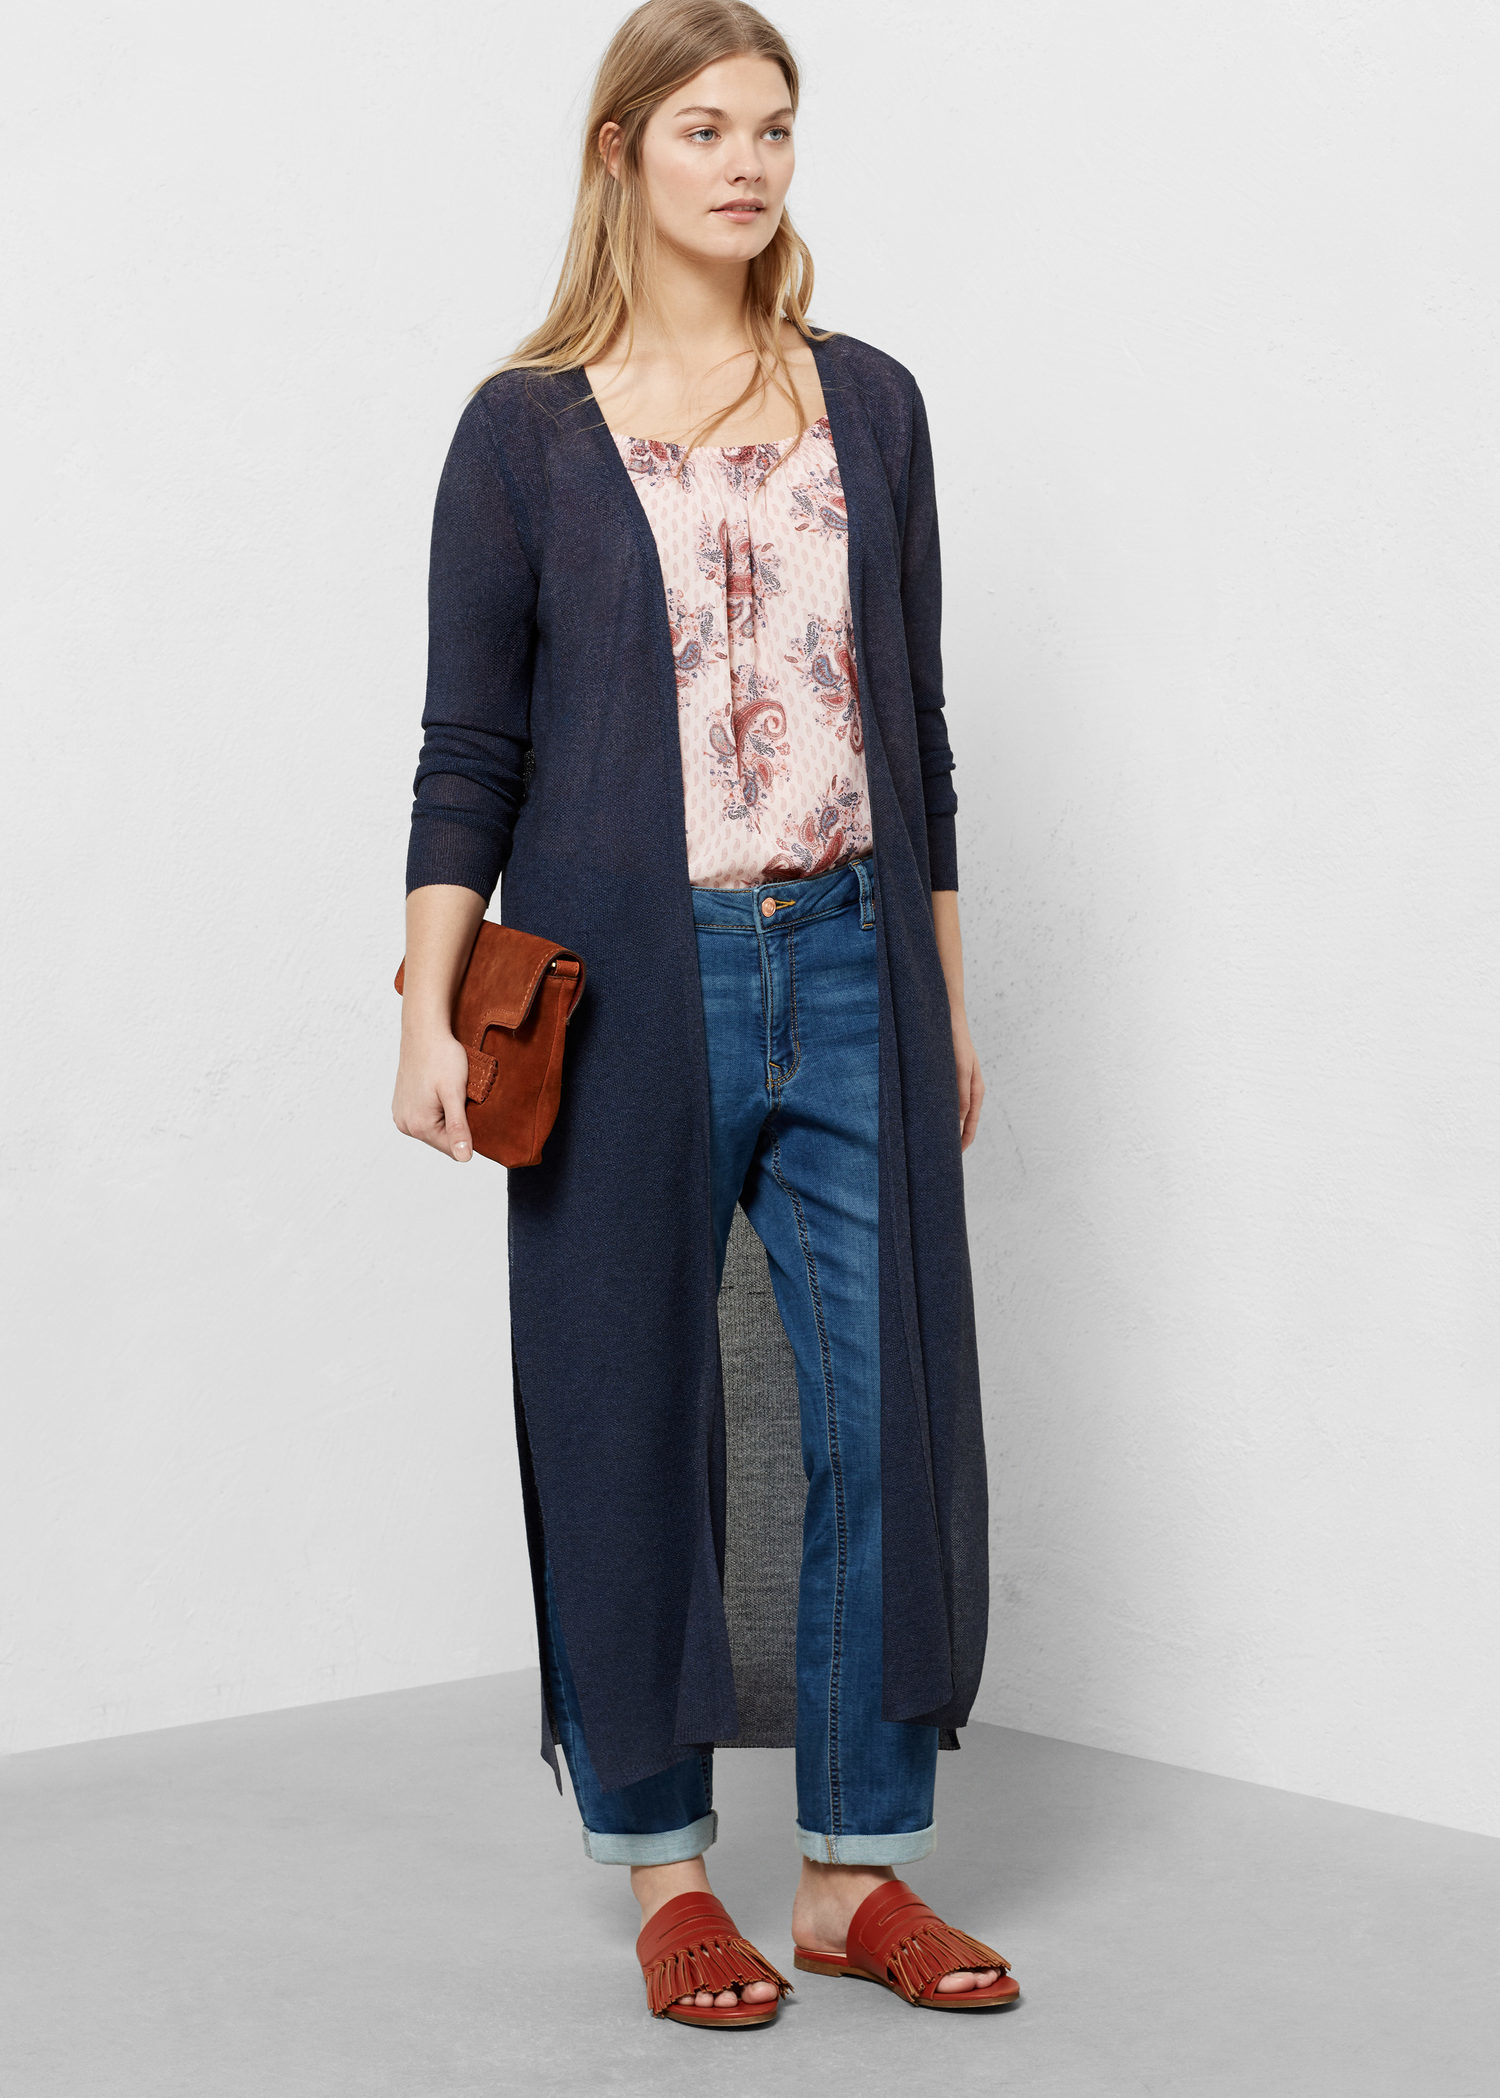 Violeta by mango Long Cardigan in Blue | Lyst